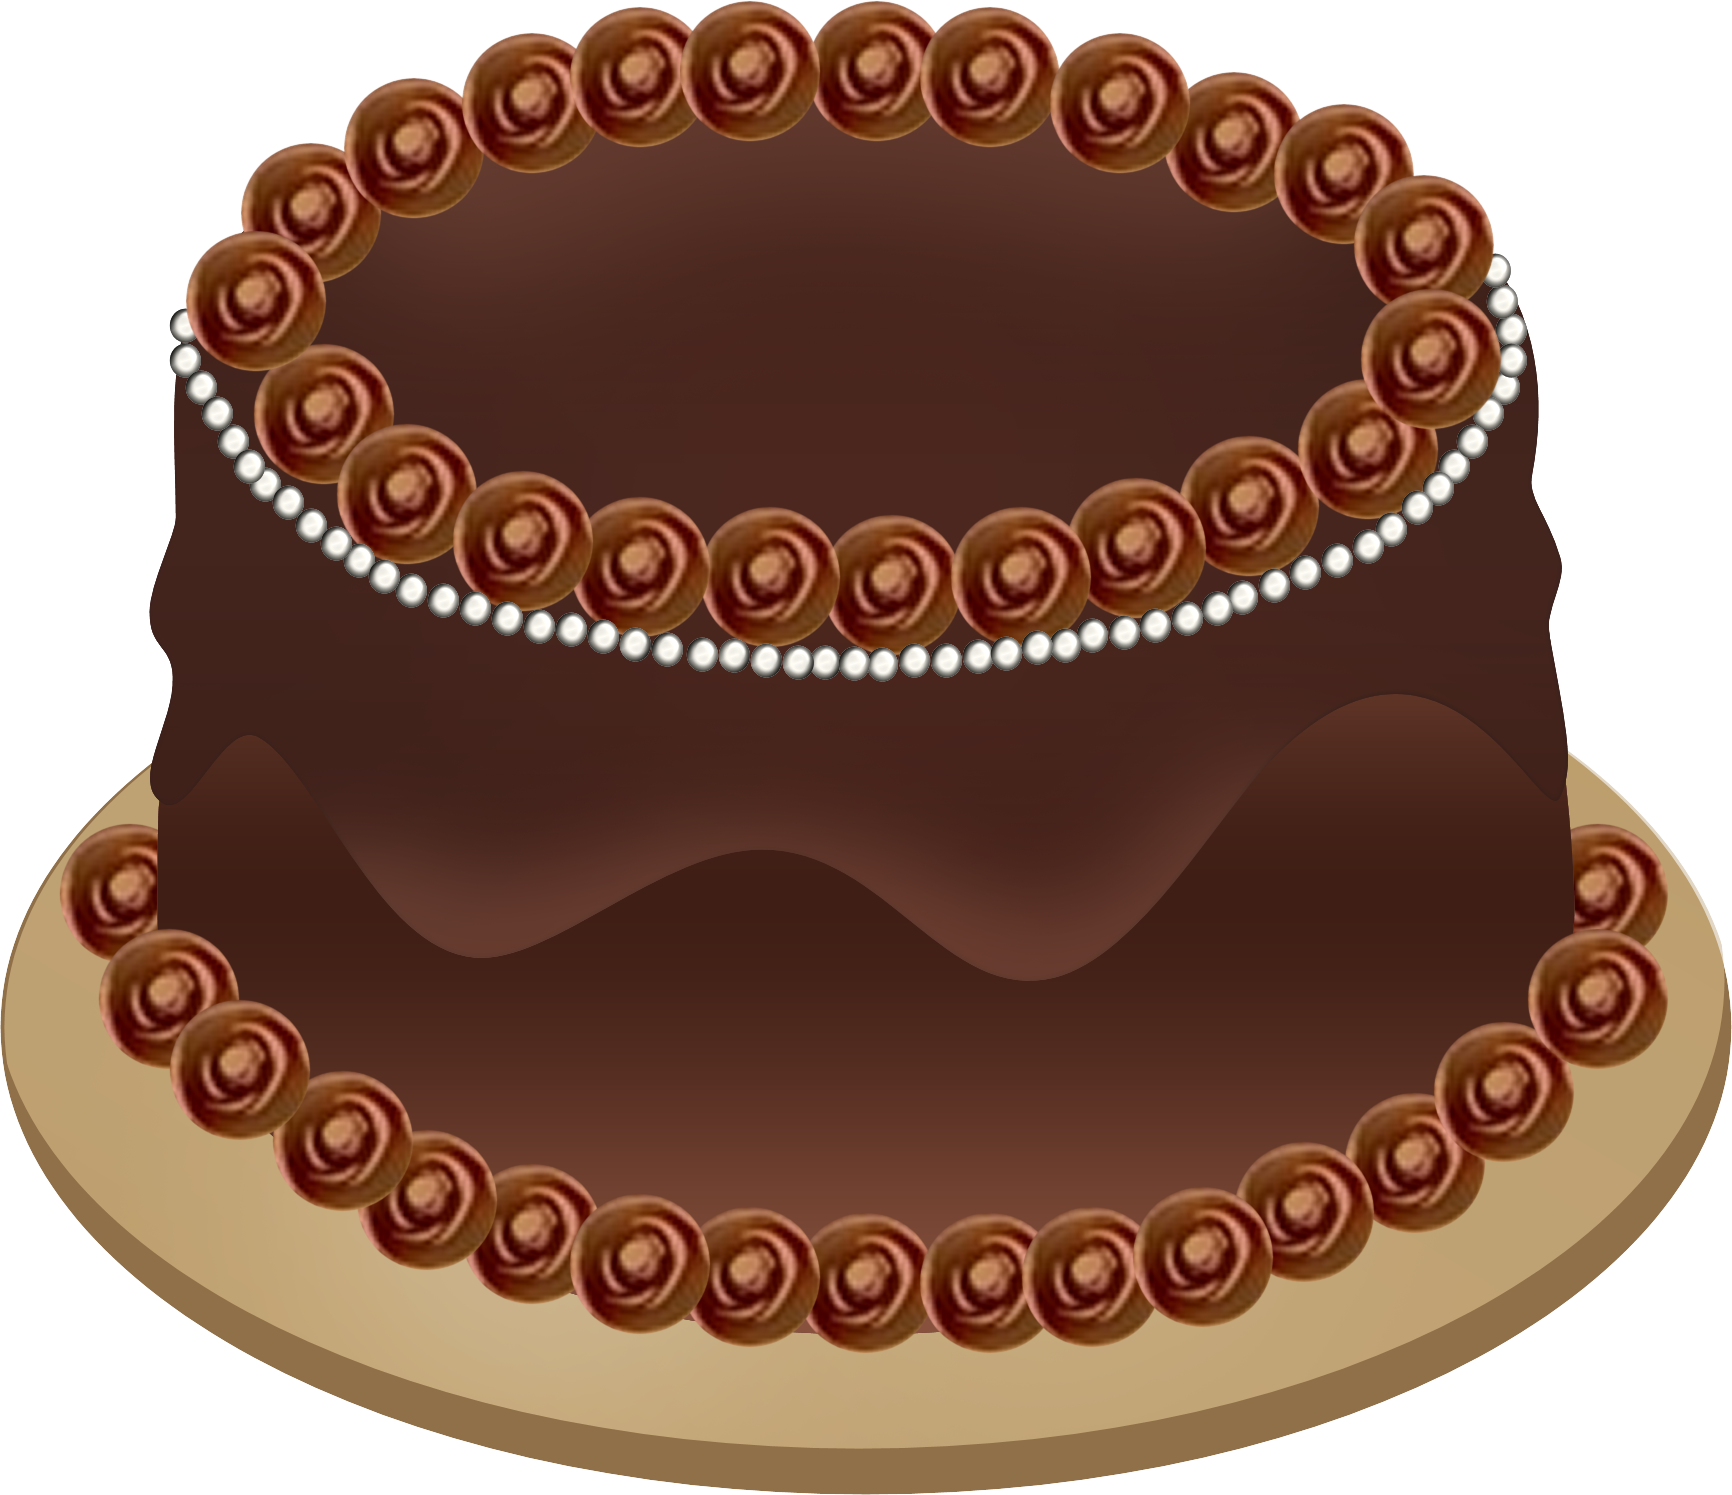 An Illustrated Birthday Cake Graphic Cli-An Illustrated Birthday Cake Graphic Click The Image To View And-0